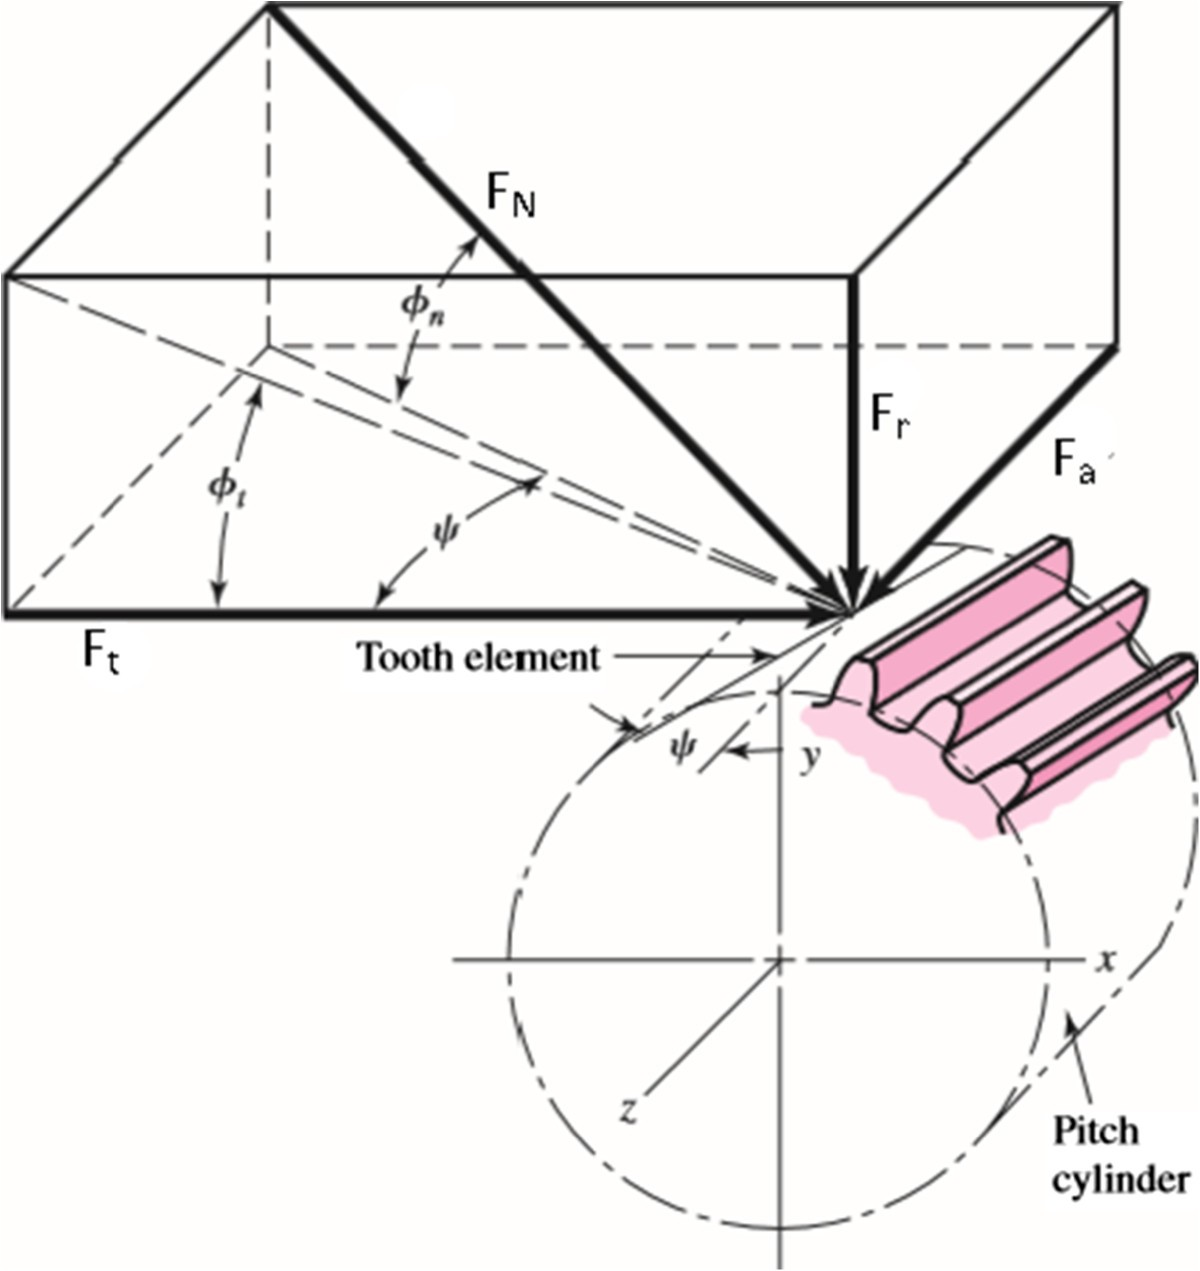 40064_2014_Article_1509_Fig6_HTML effects of pressure angle and tip relief on the life of speed